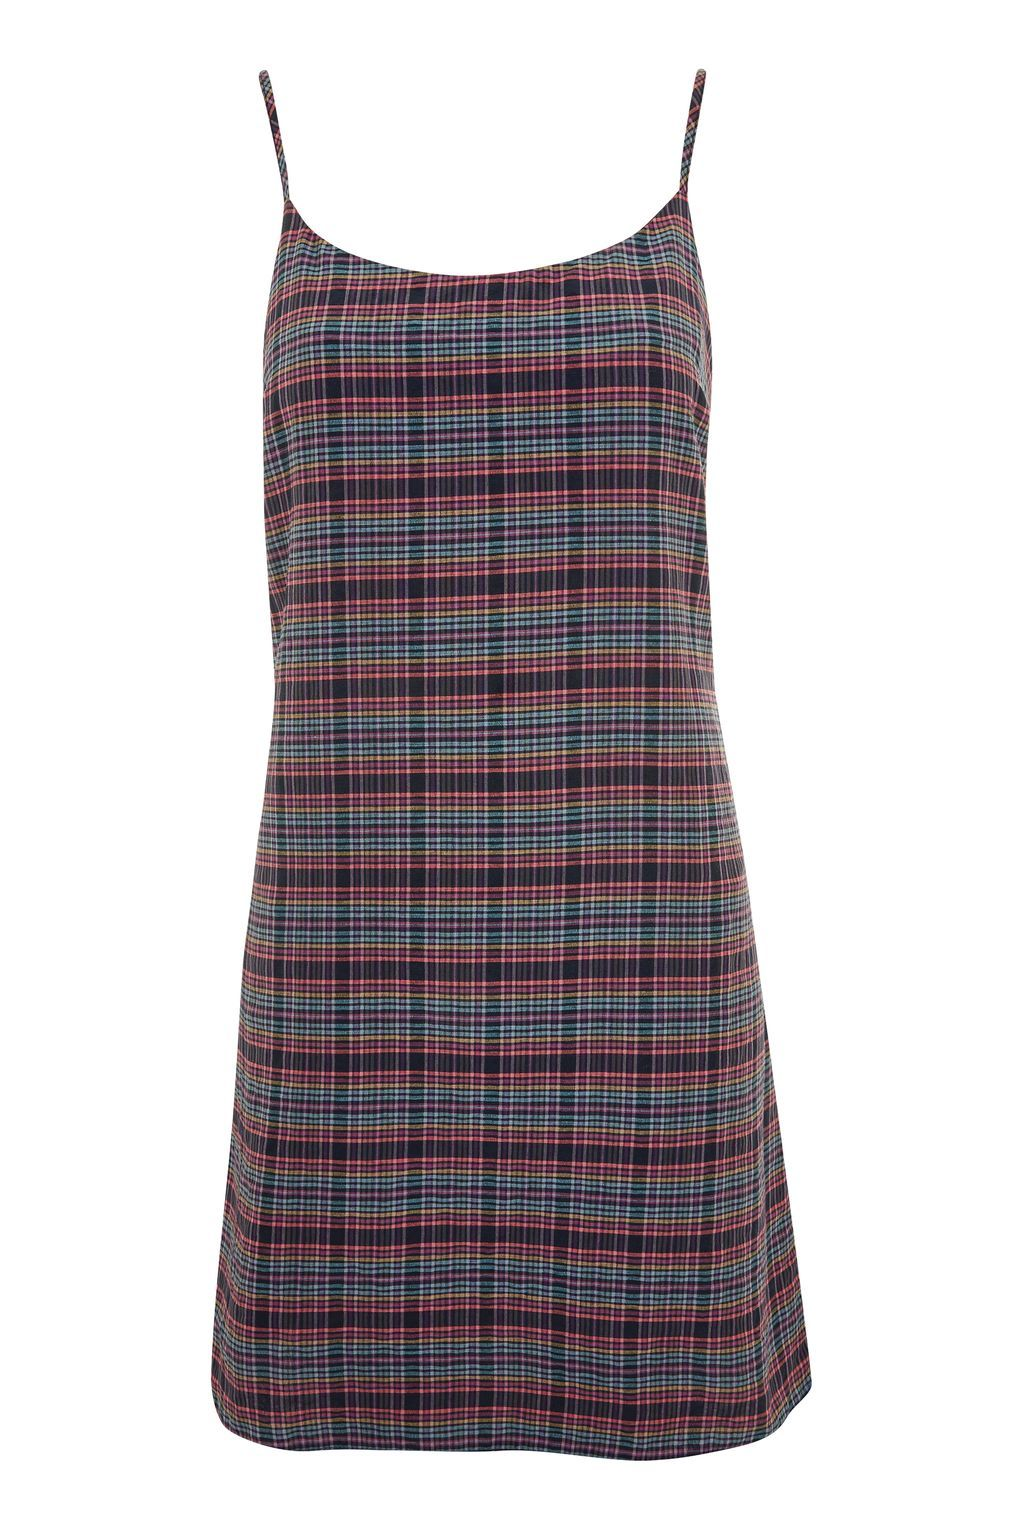 Shop For Online Nobody's Child Womens **Seersucker Checked Slip Dress by - Newest Online 5IL3o